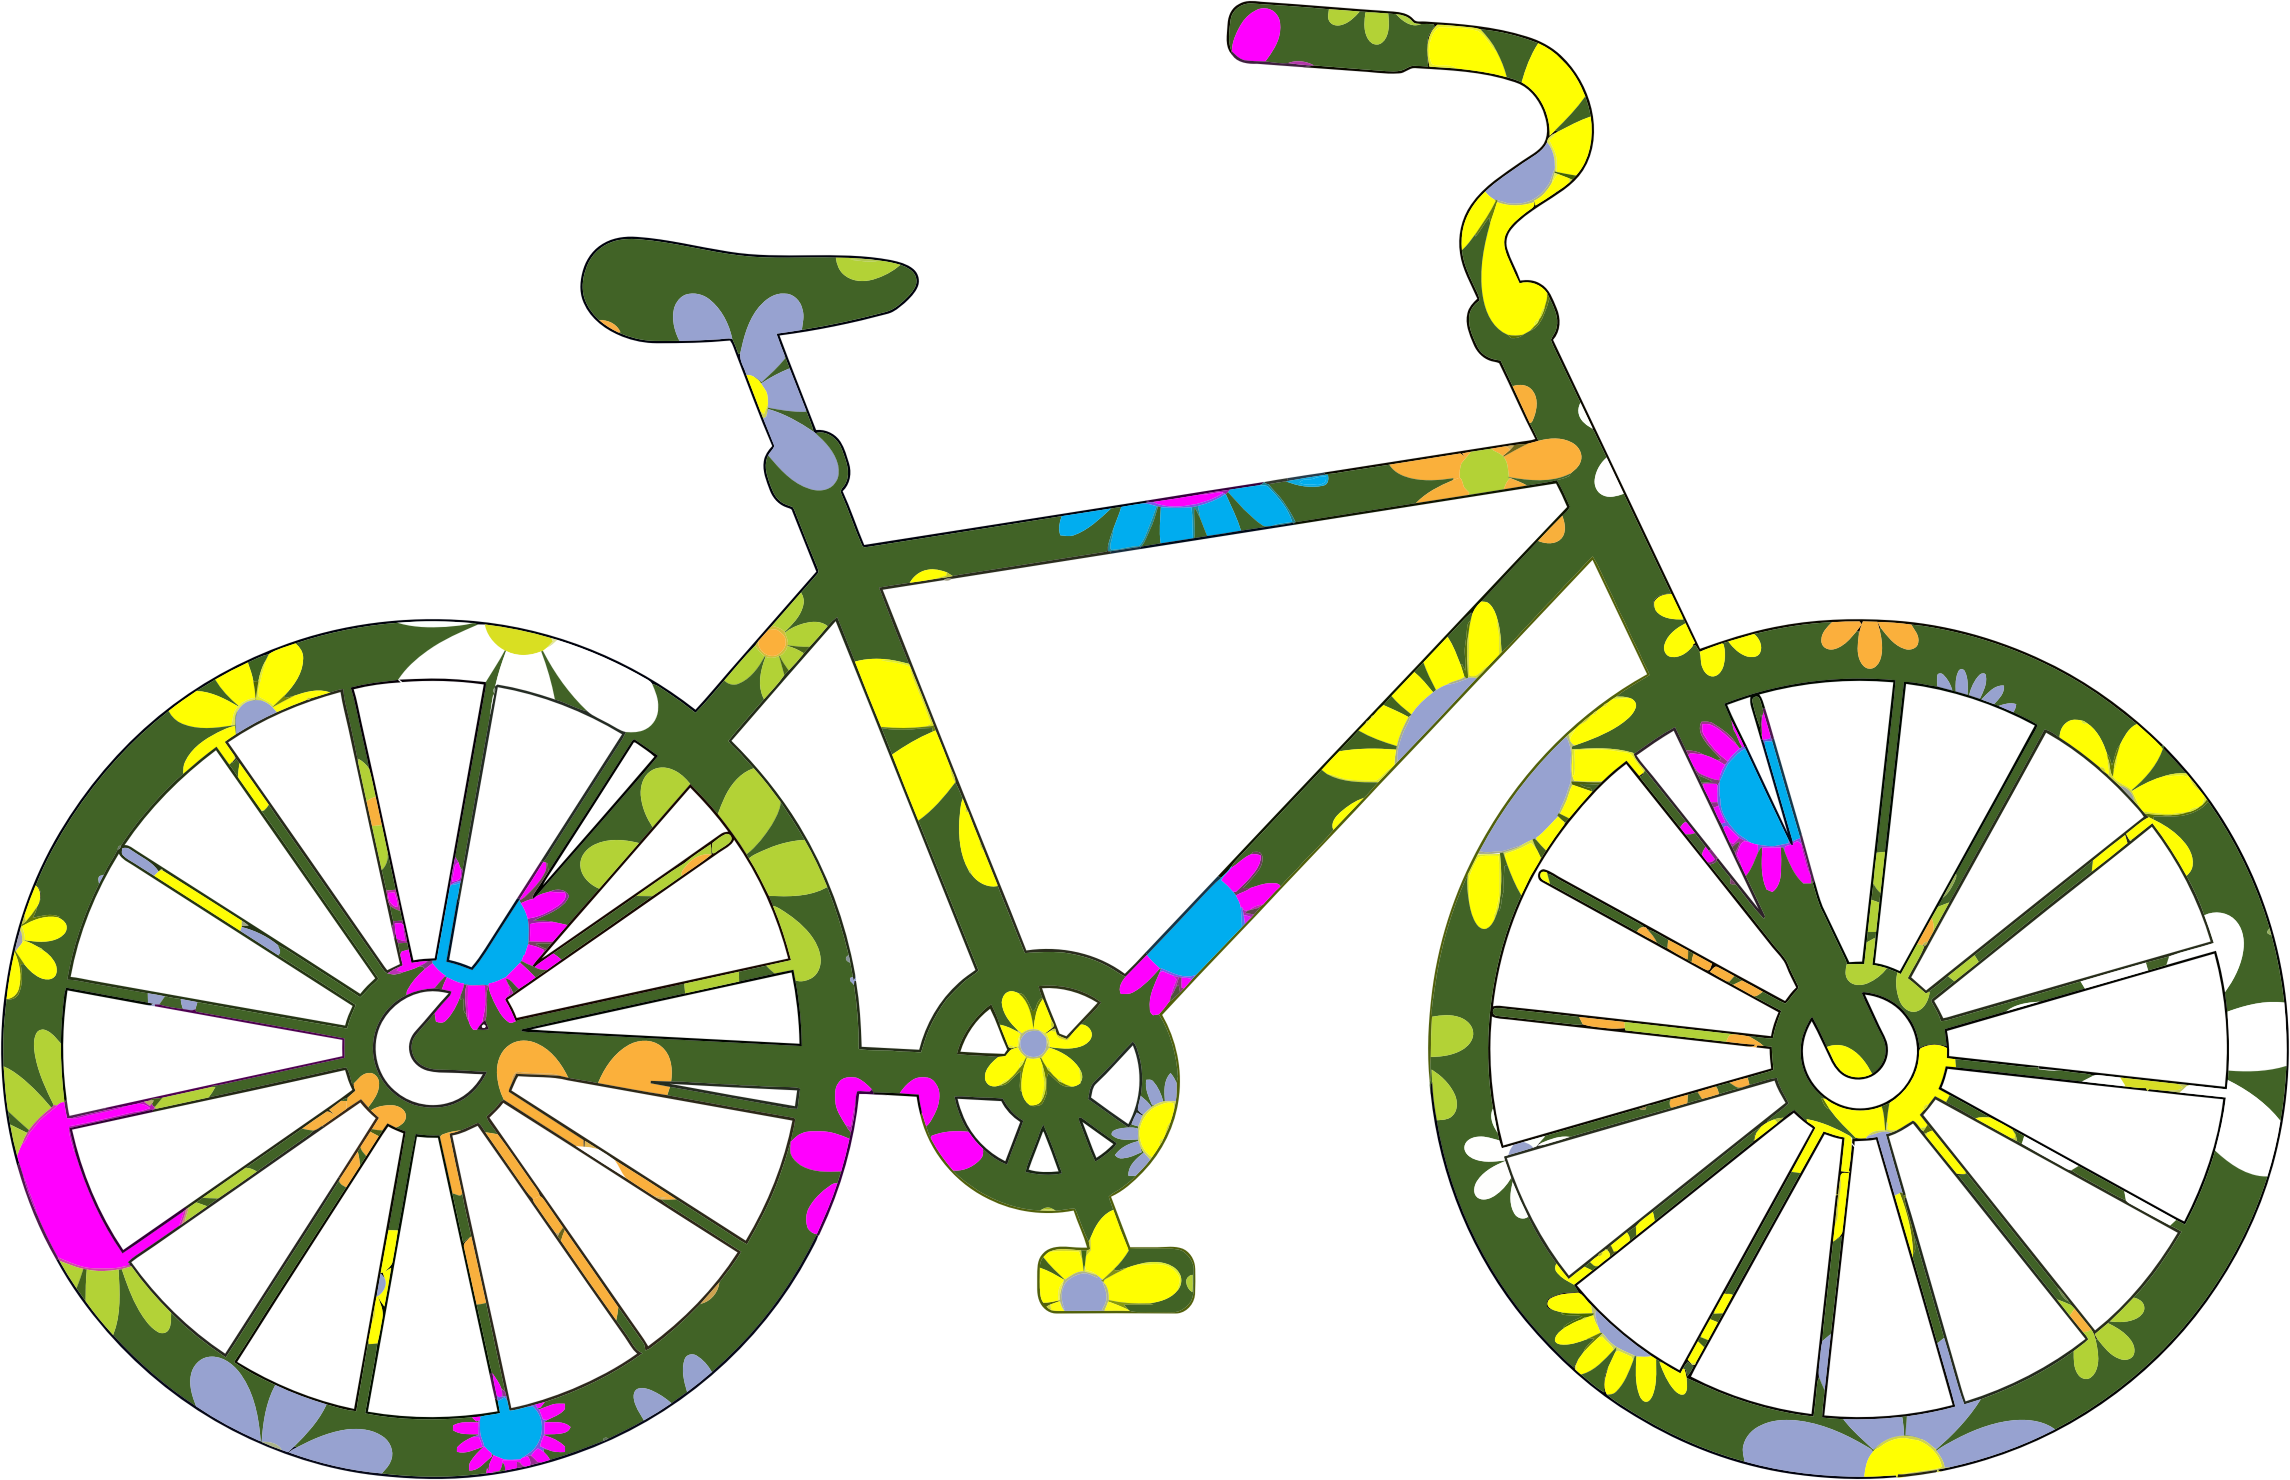 Cycle clipart retro bike. Desktop backgrounds floral bicycle